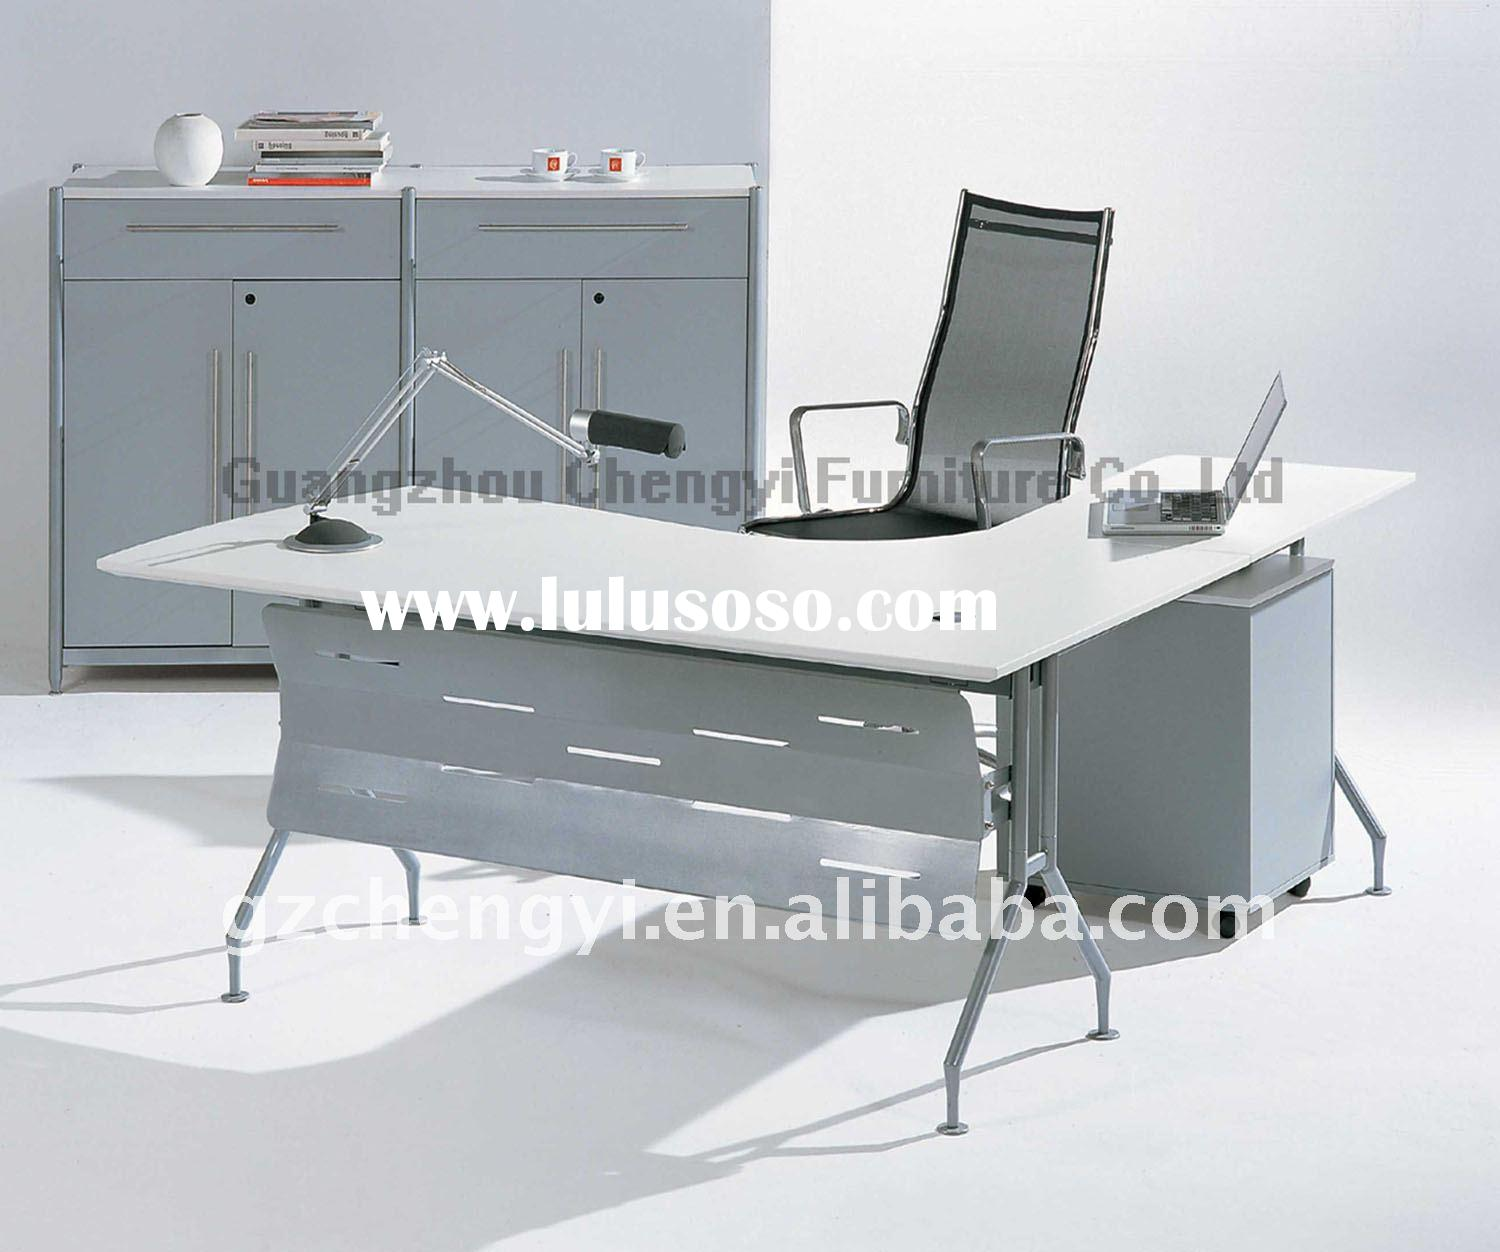 office l desk, office l desk Manufacturers in LuLuSoSo.com - page 1